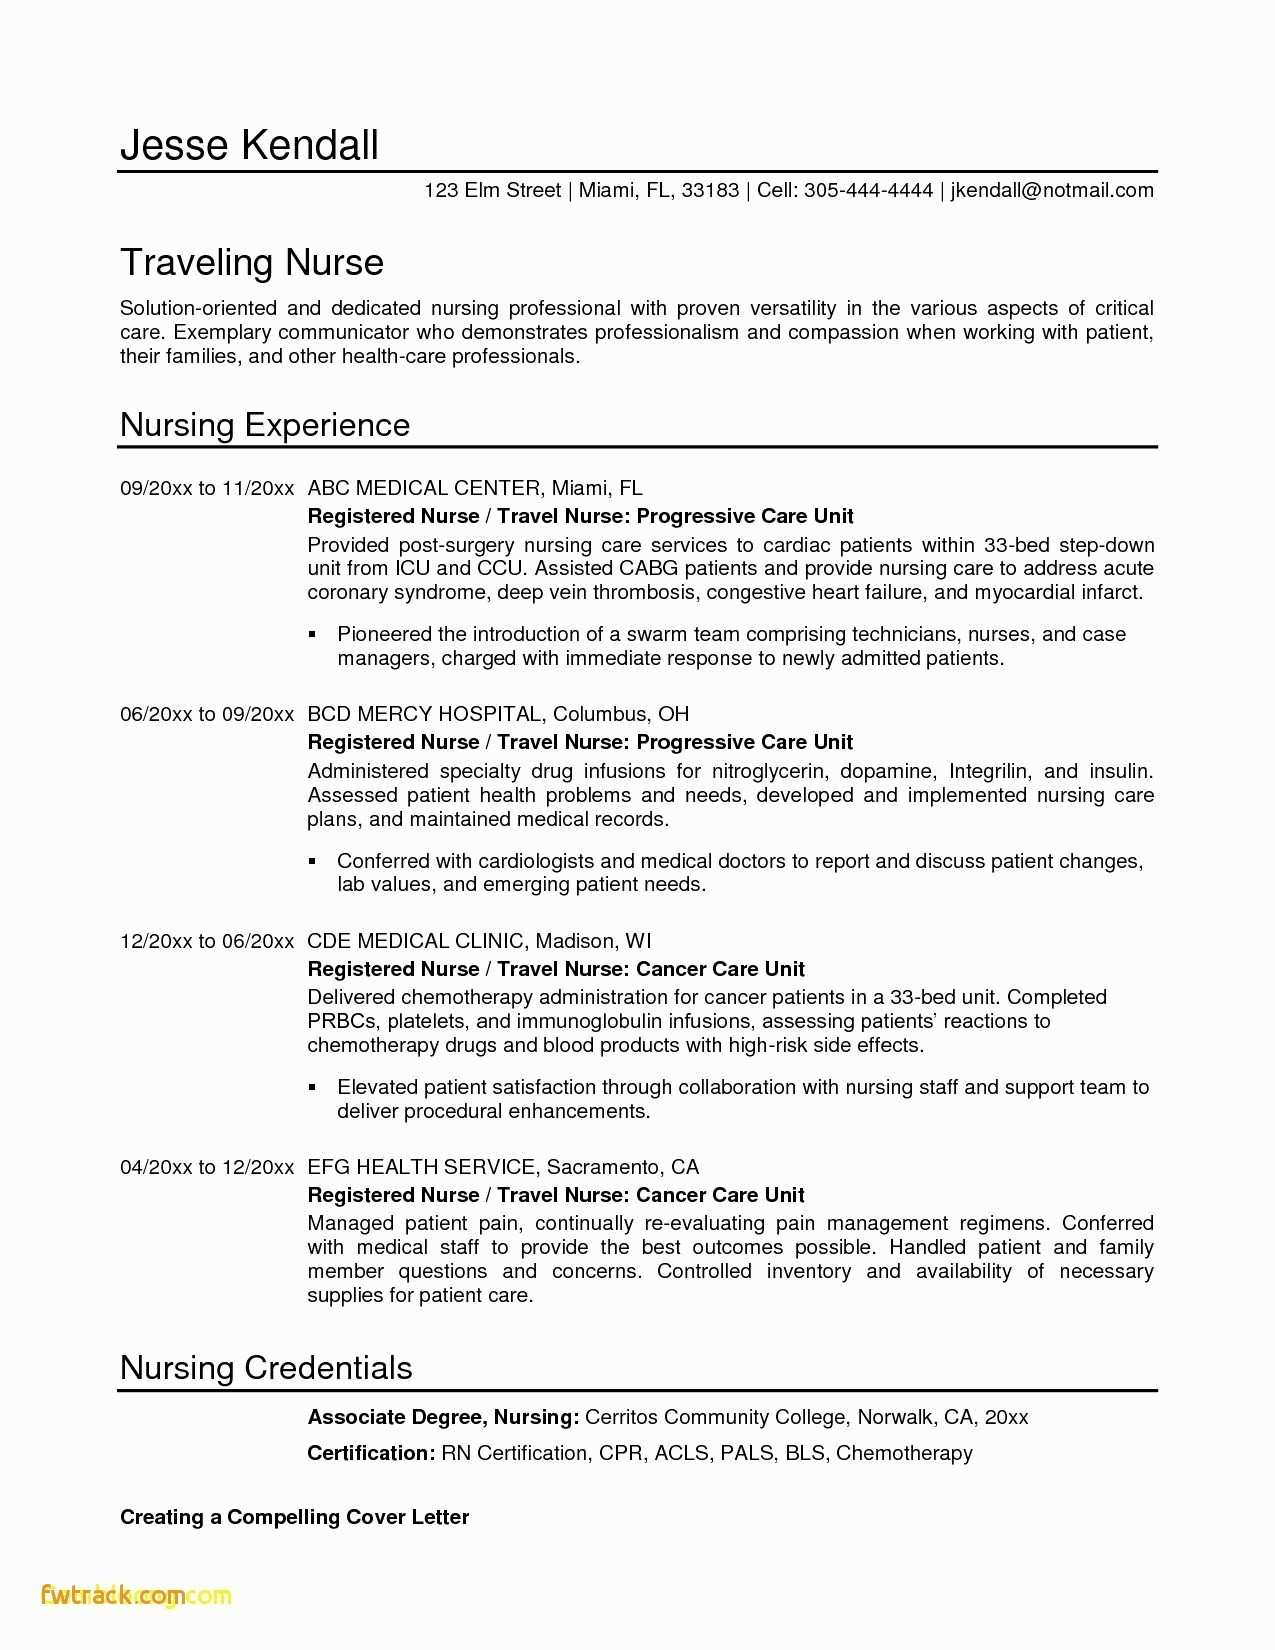 Medical Resume Template Microsoft Word - Standard Resume Template Microsoft Word Fwtrack Fwtrack